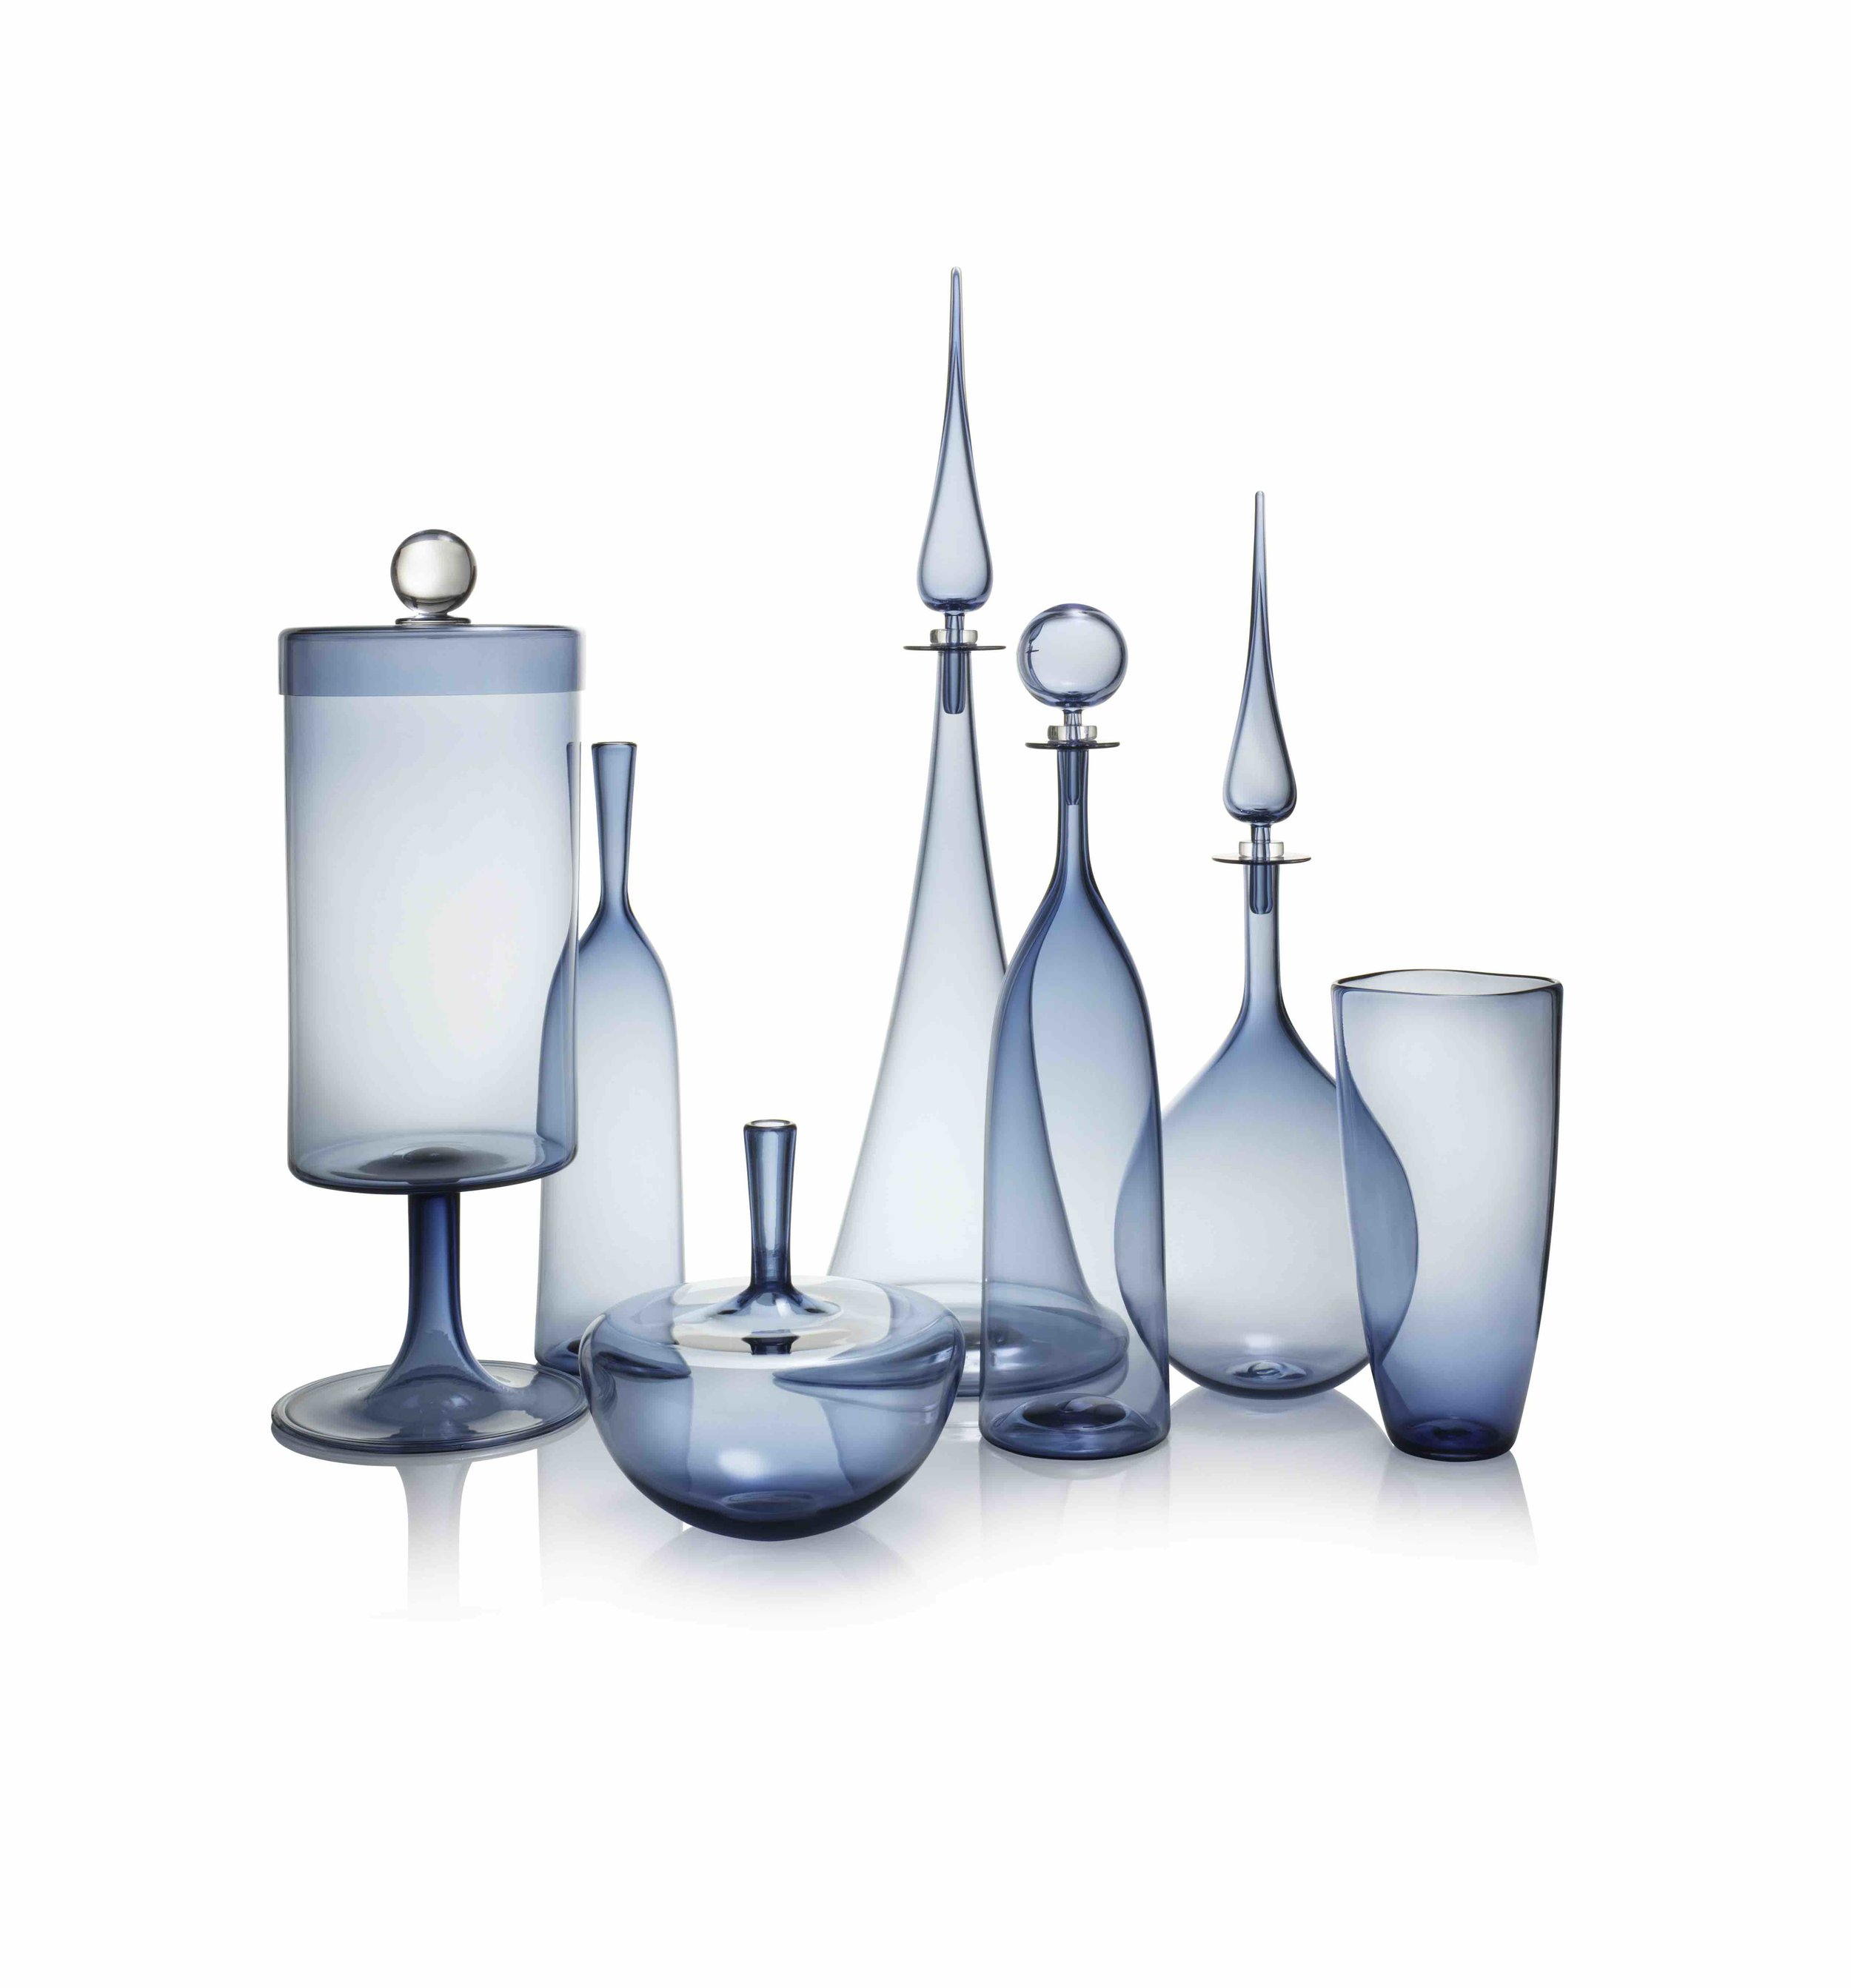 ICE BLUE GROUP: APOTHECARY JAR, ANGELIC BOTTLE SMALL & ARC,LARGE DECANTER FLUTED CONE, PETITE DECANTER TALL BOTTLE, PETITE DECANTER TEAR DROP, ANGELIC VESSEL VASE